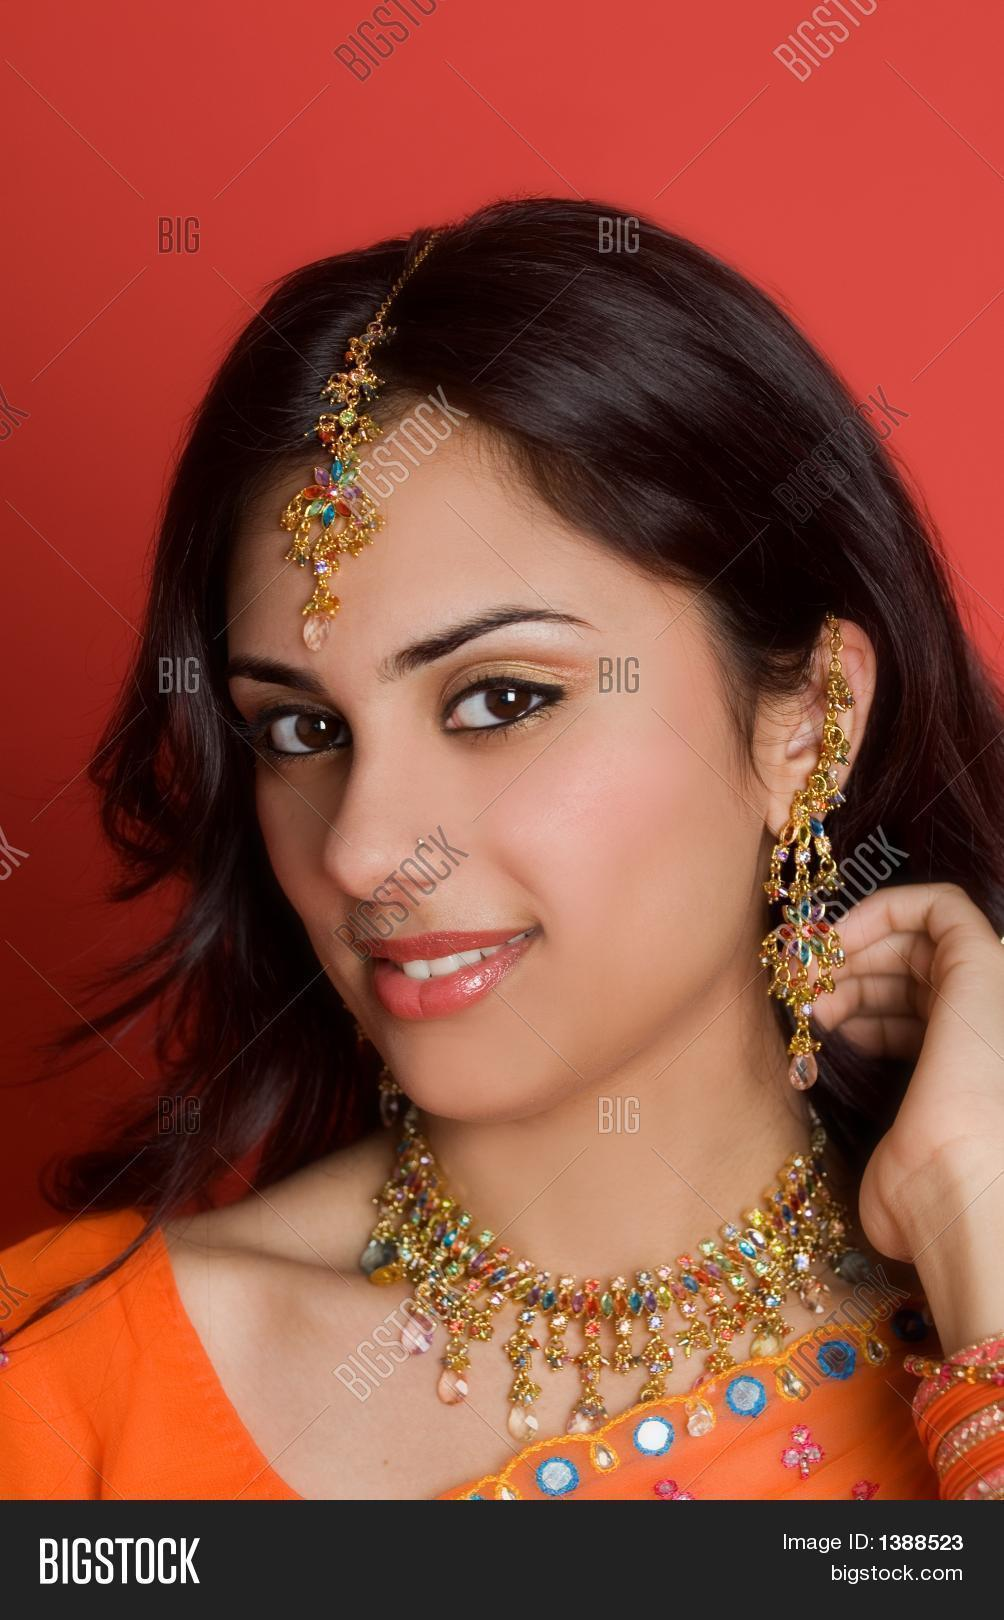 hindu single women in callensburg Meet hindu single women in bruin interested in meeting new people to date on zoosk over 30 million single people are using zoosk to find people to date.